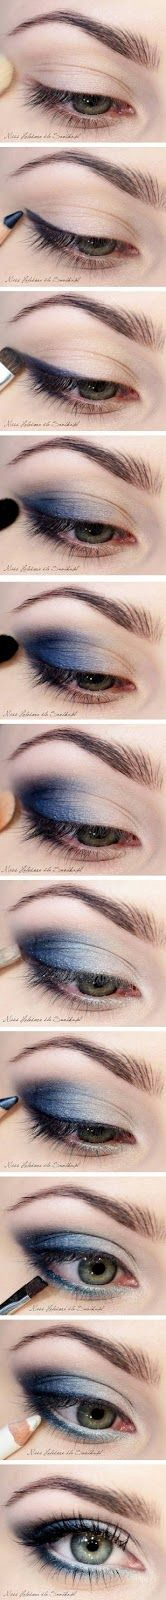 Learn stylish eye makeup for ladies:-  The above picture is showing the whole procedure of doing stylish eye makeup for ladies..... click on picture to read more